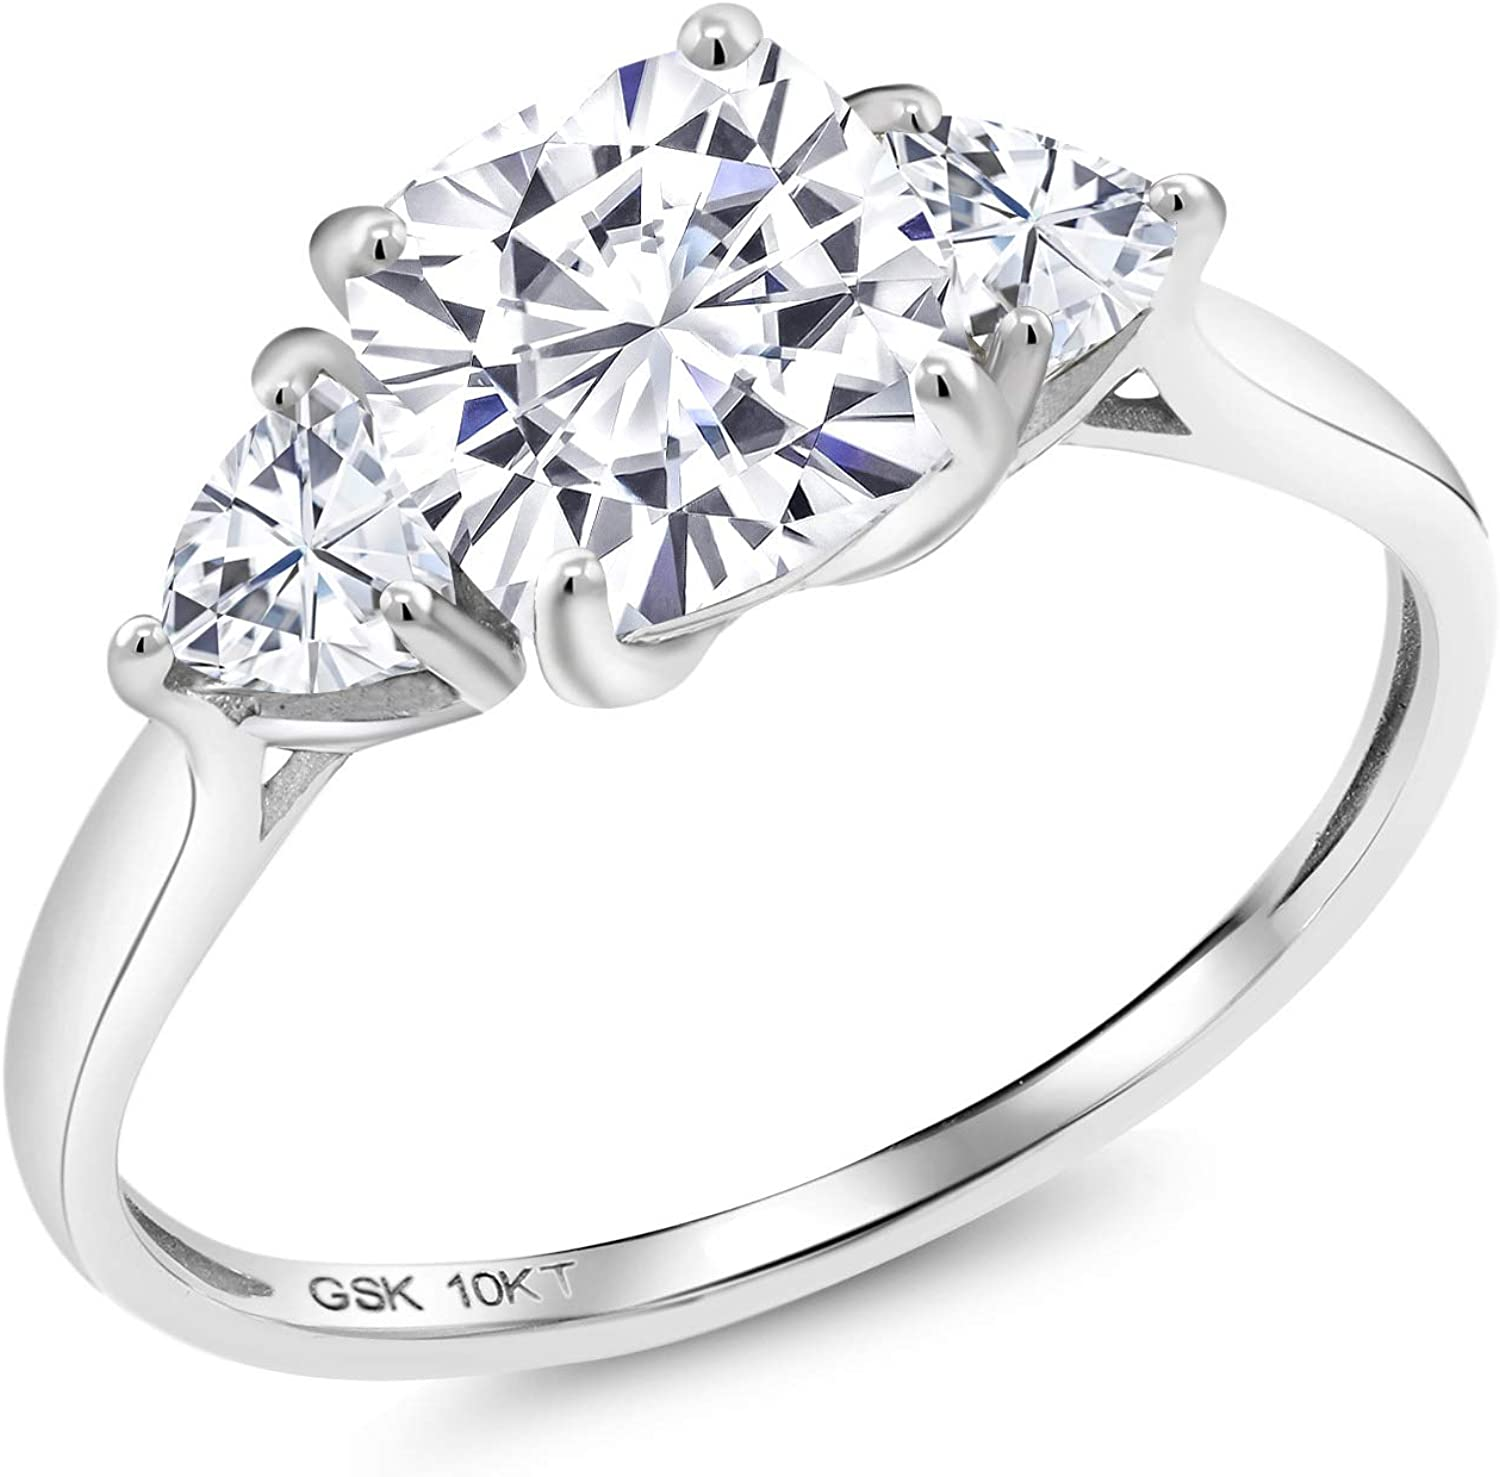 Gem Stone King 10K White Gold Created Moissanite 3-Stone Women Engagement Ring (Cushion Cut 7MM Timeless Brilliant 2.16 Cttw, Available in size 5, 6, 7, 8, 9)